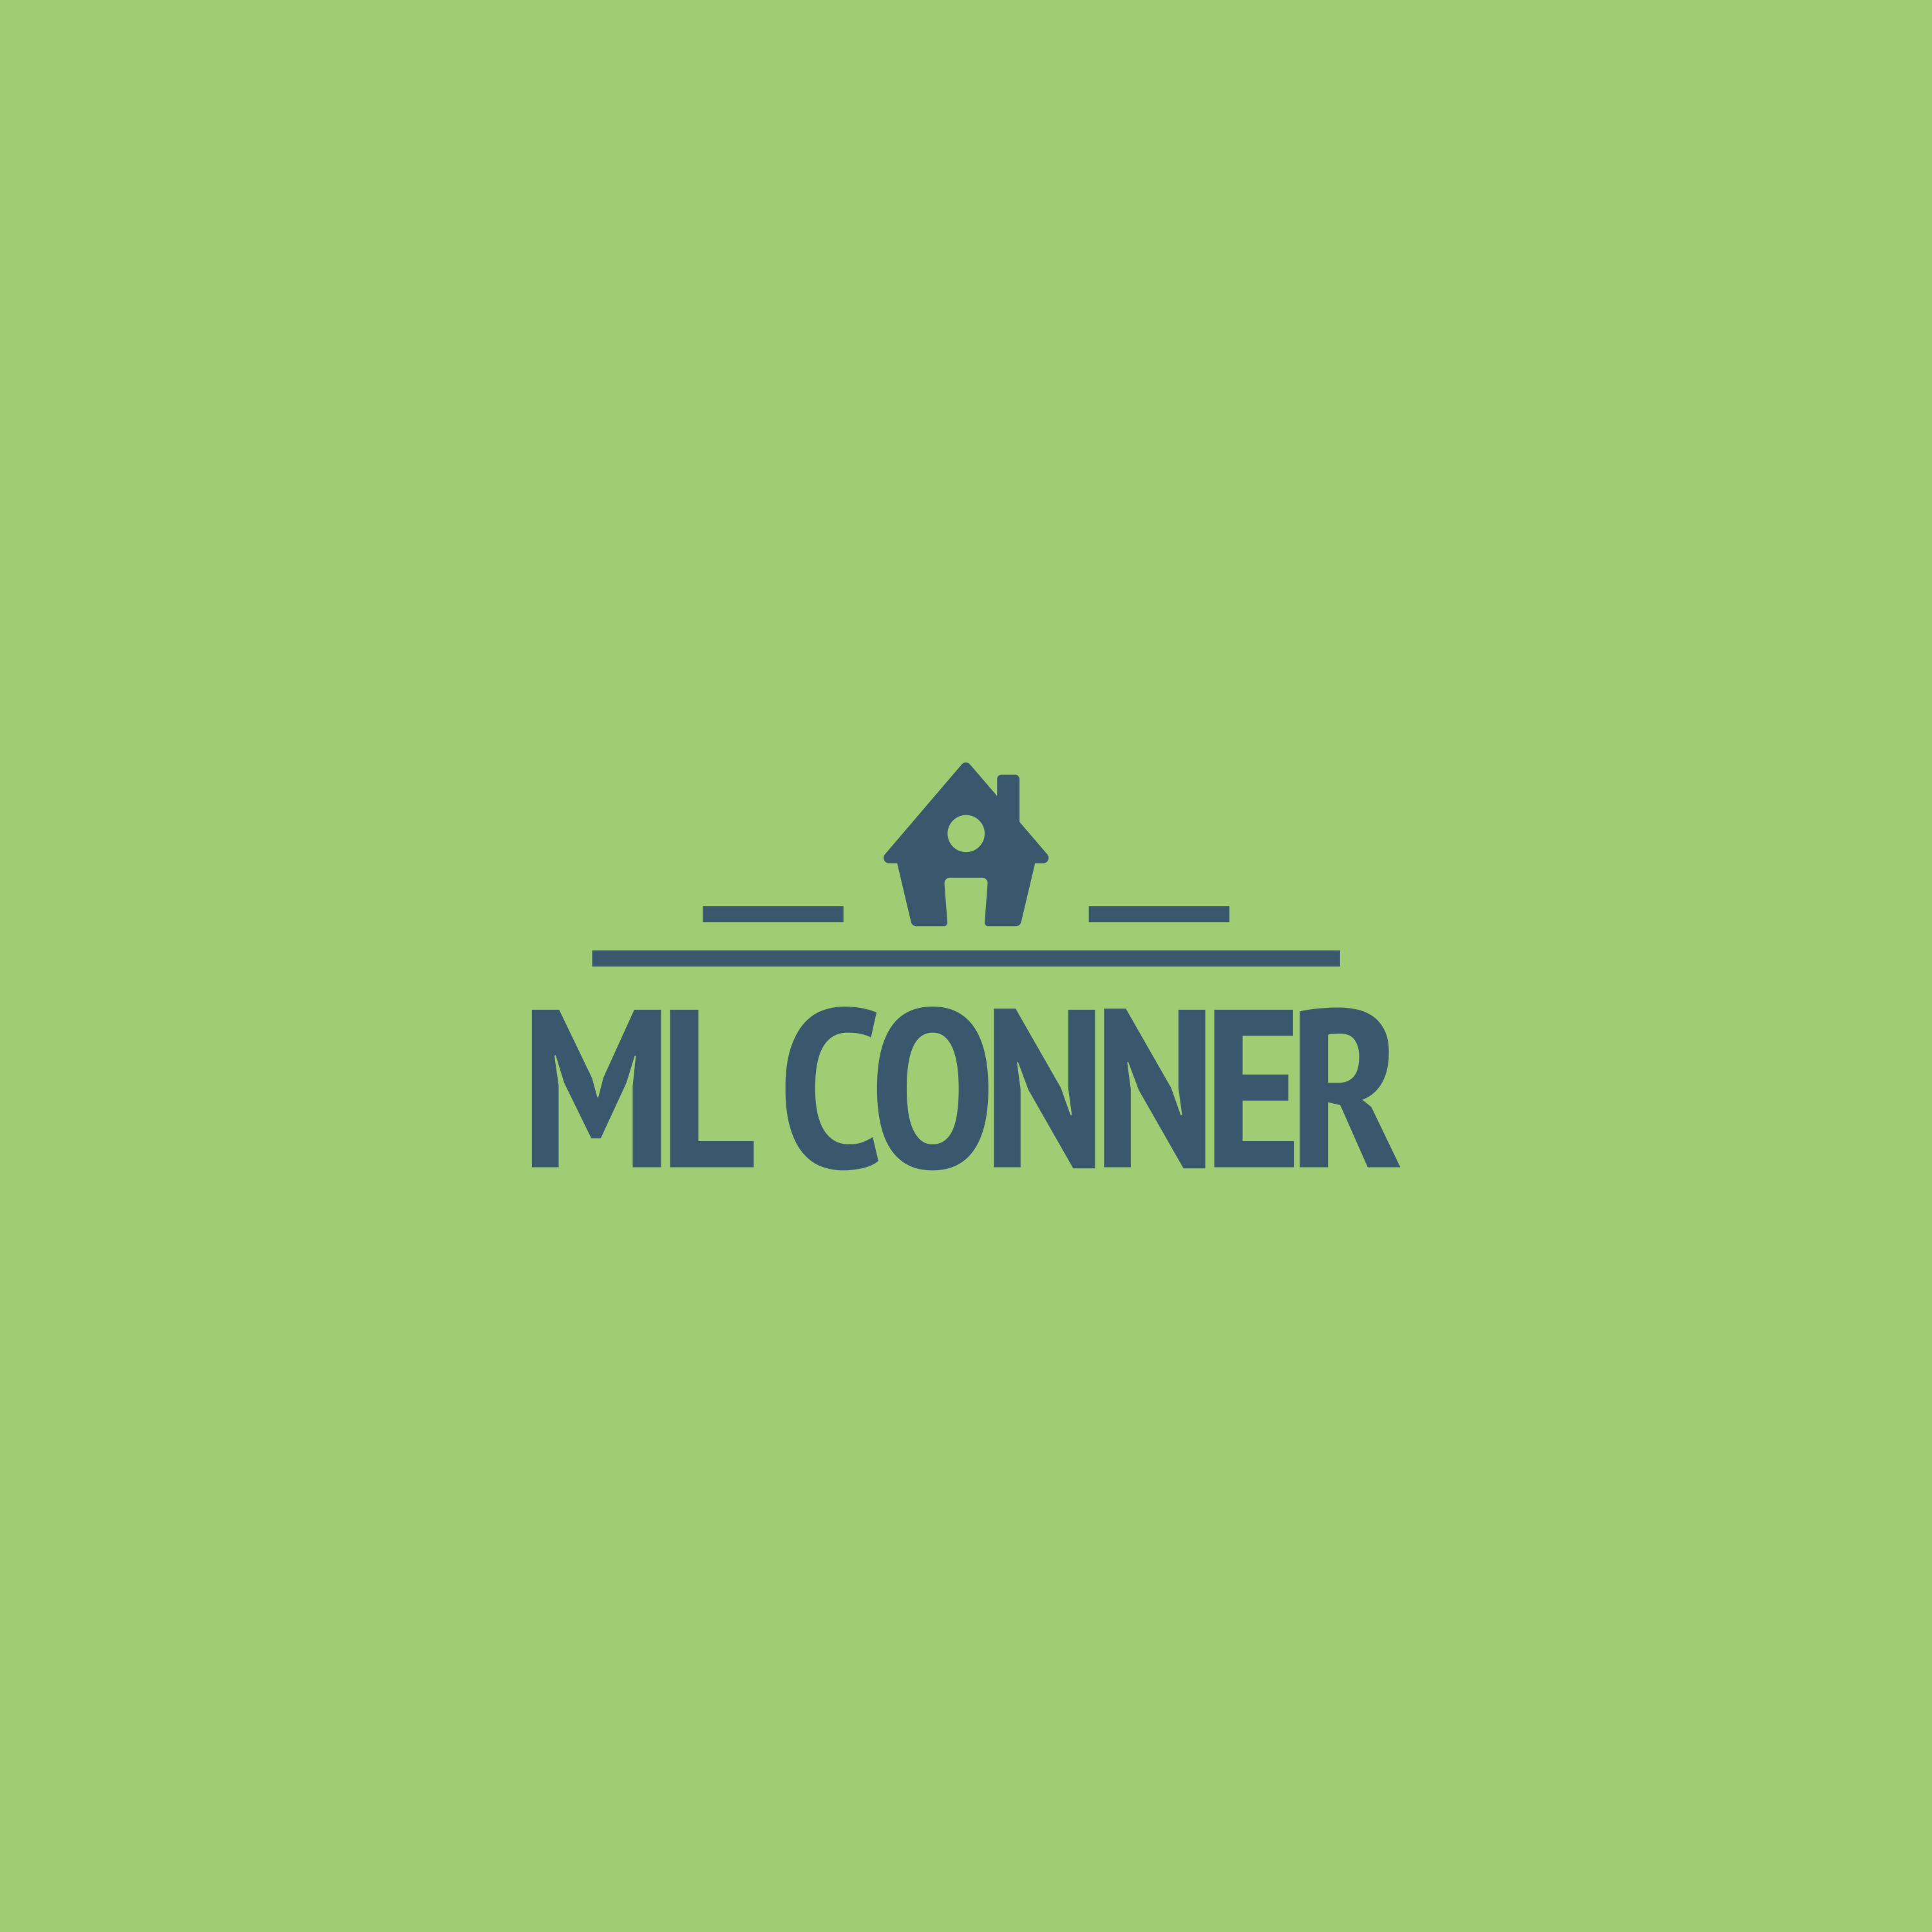 ML Conner